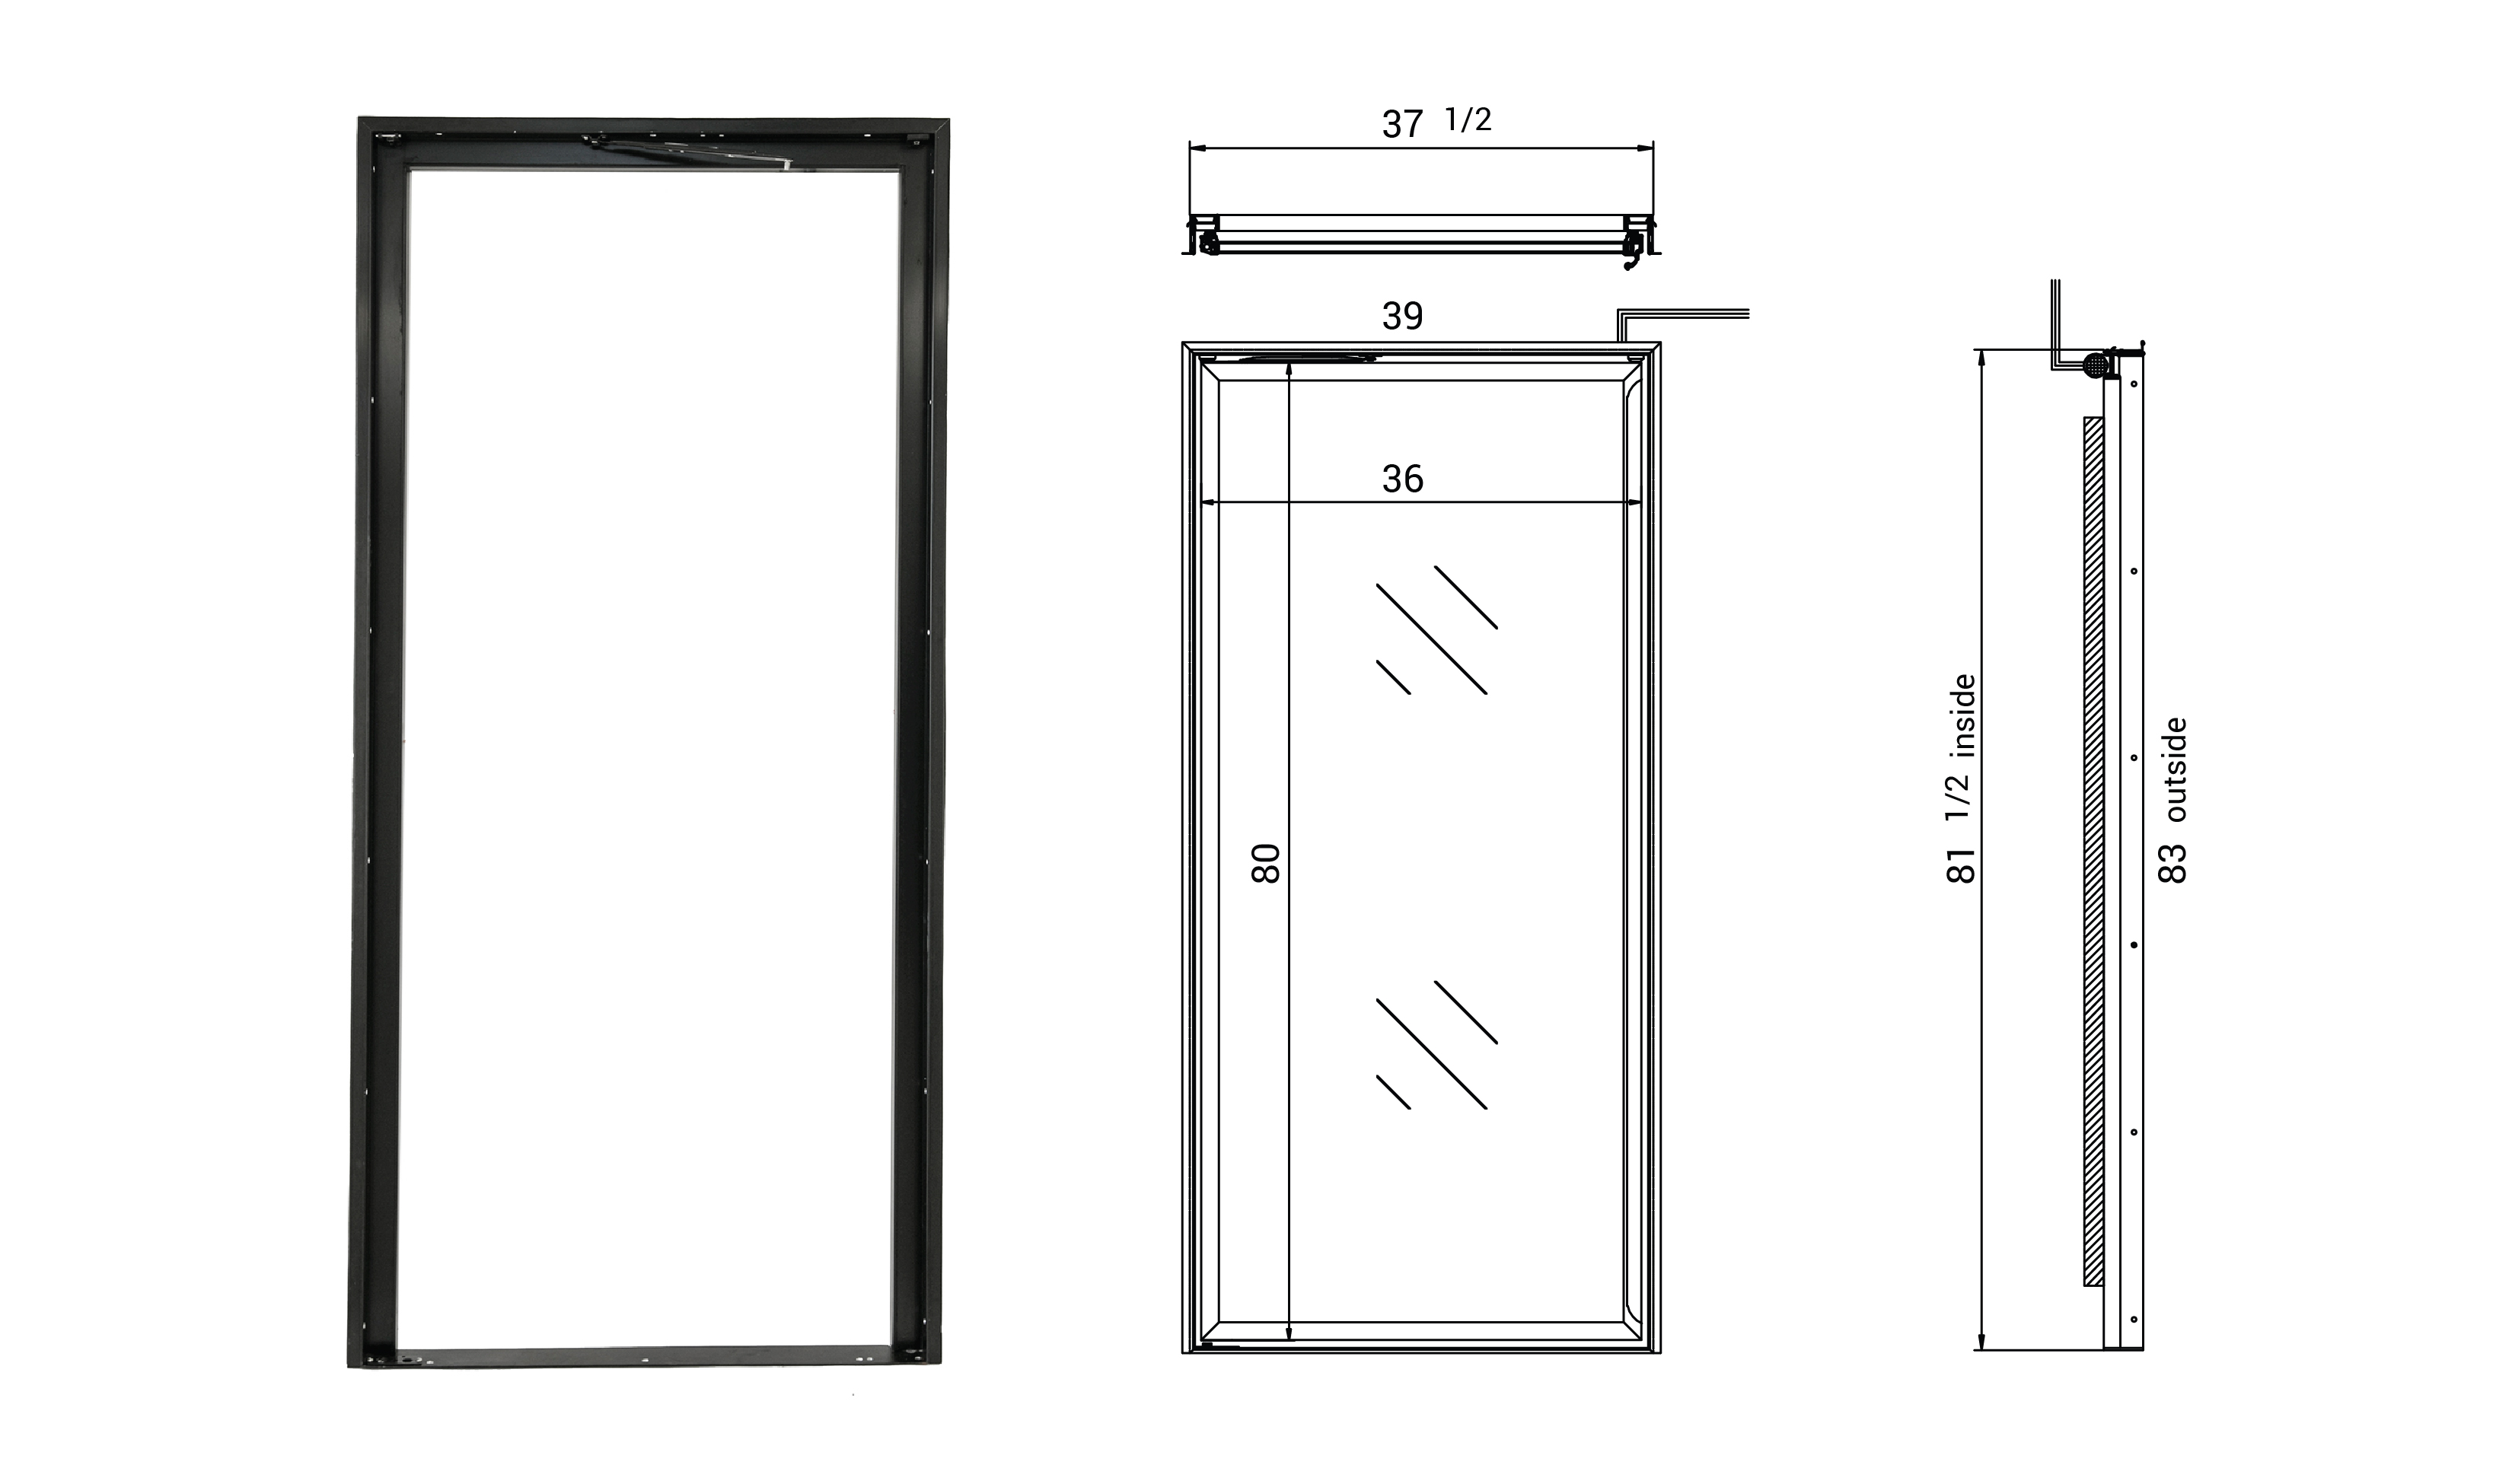 Rw international glass door frames for Entrance door frame